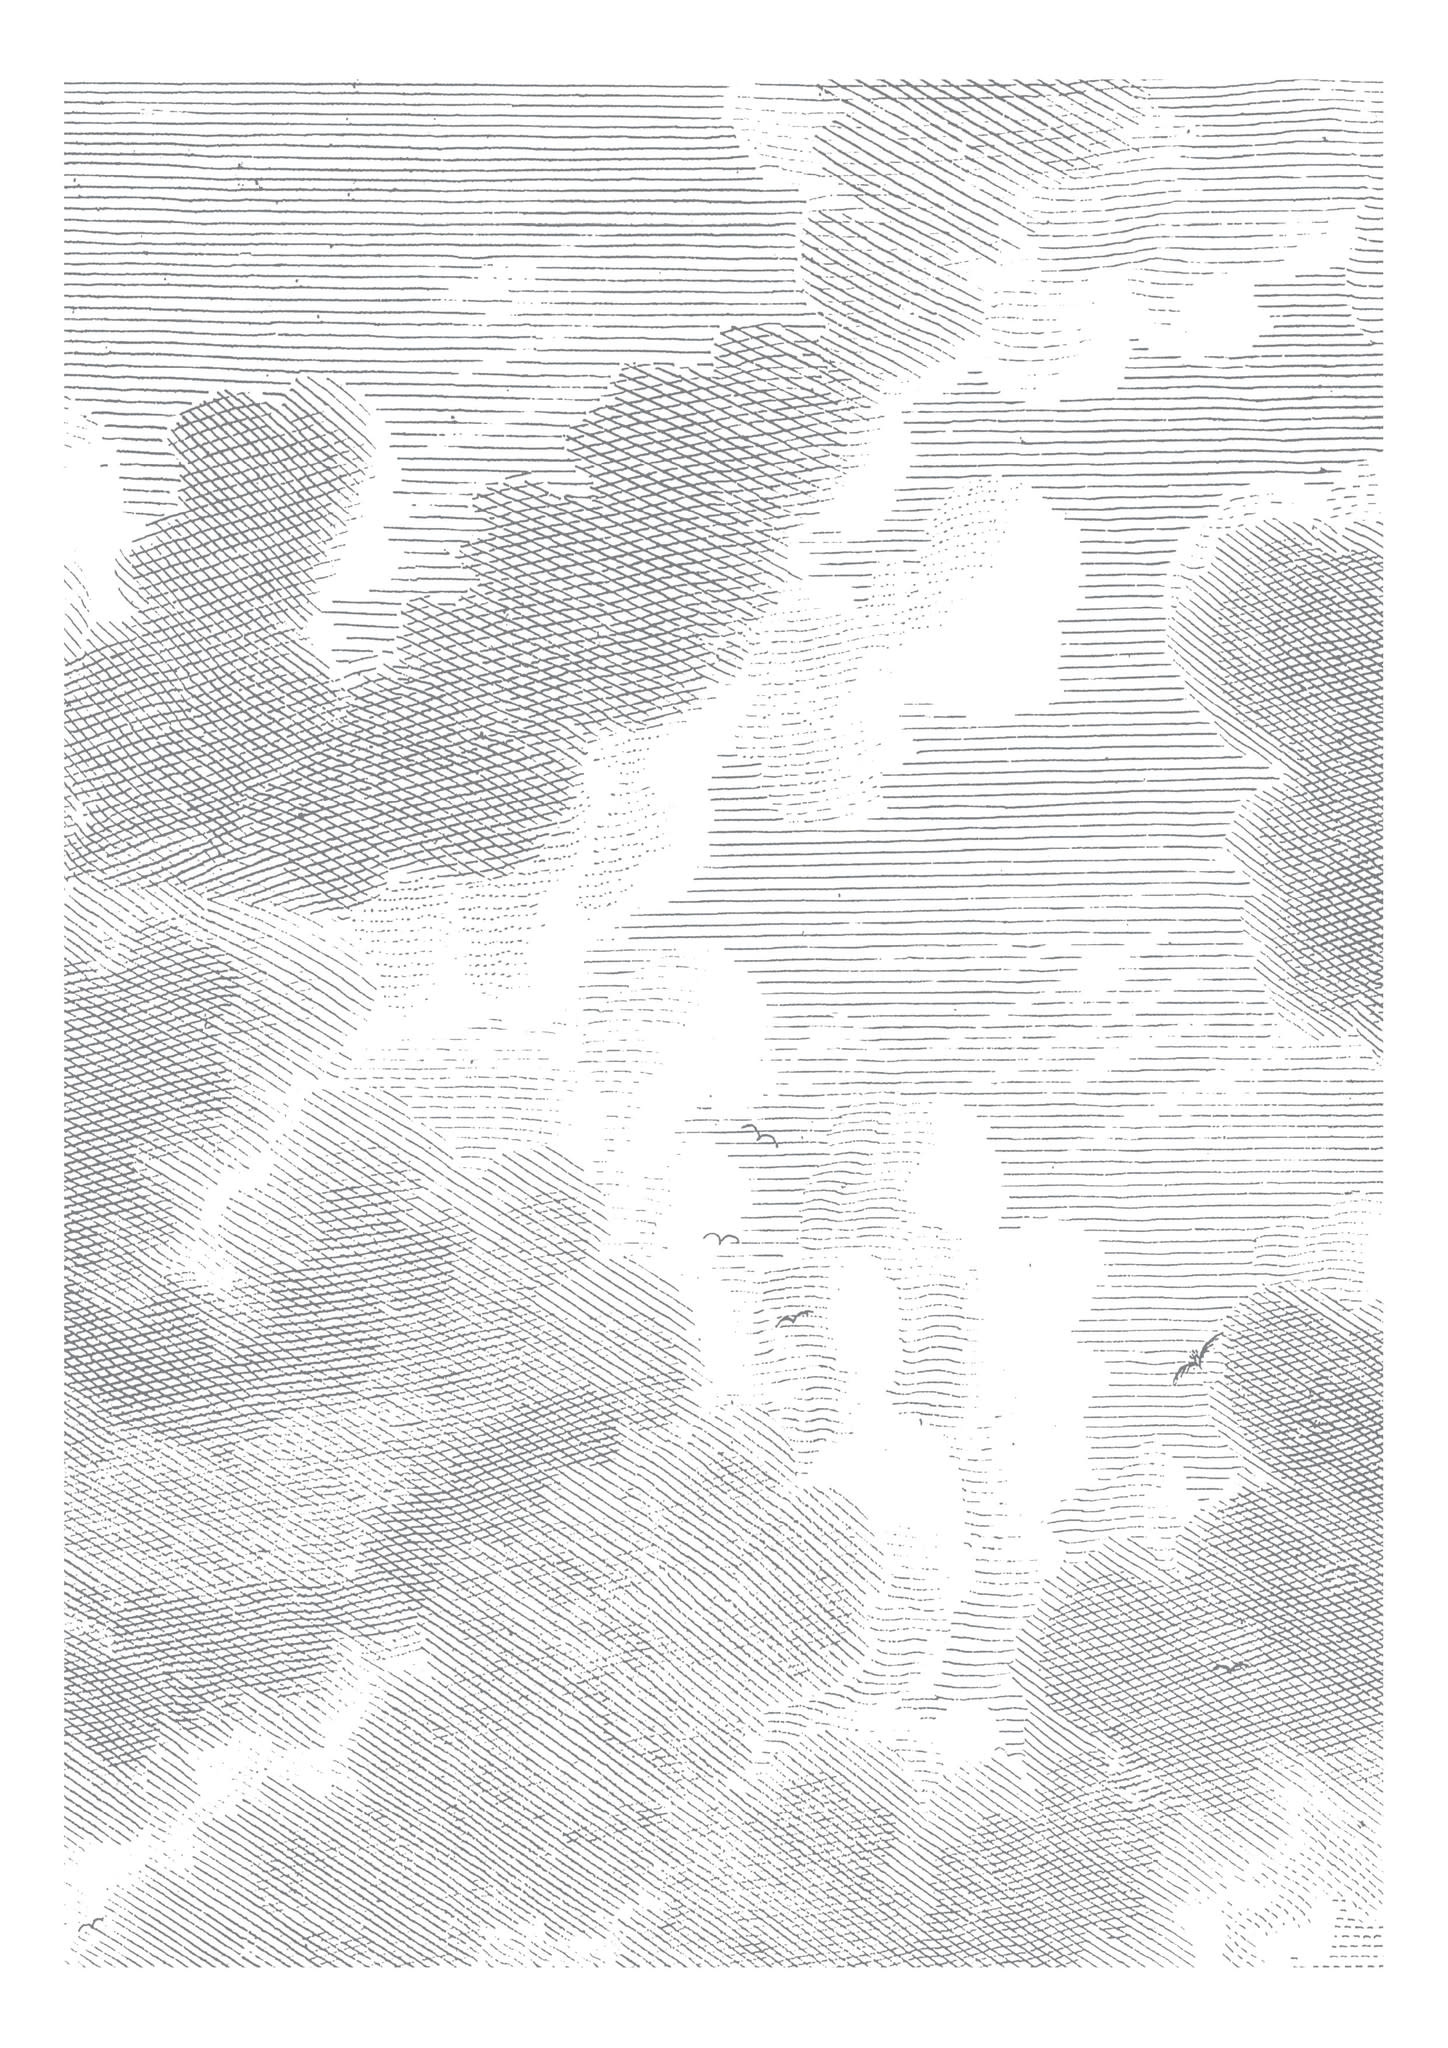 Behang Engraved Clouds 194.8x 280cm-1